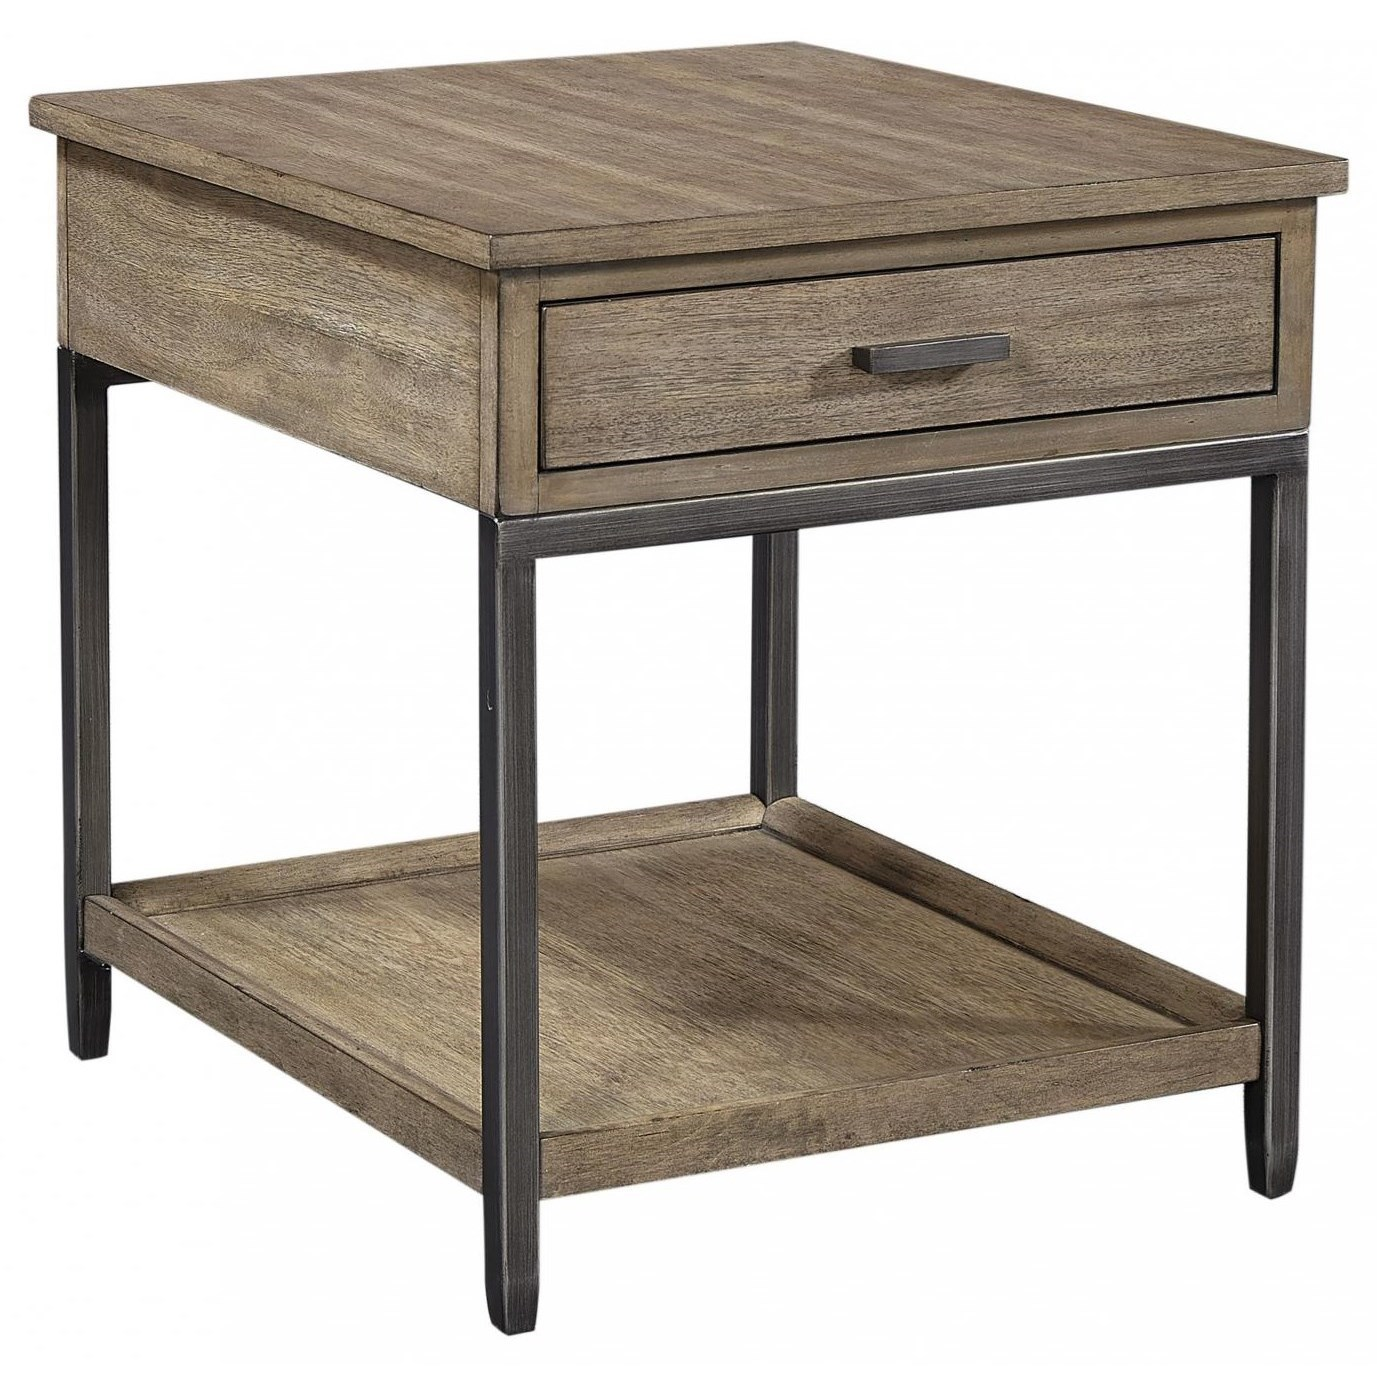 Trellis End Table by Aspenhome at Walker's Furniture